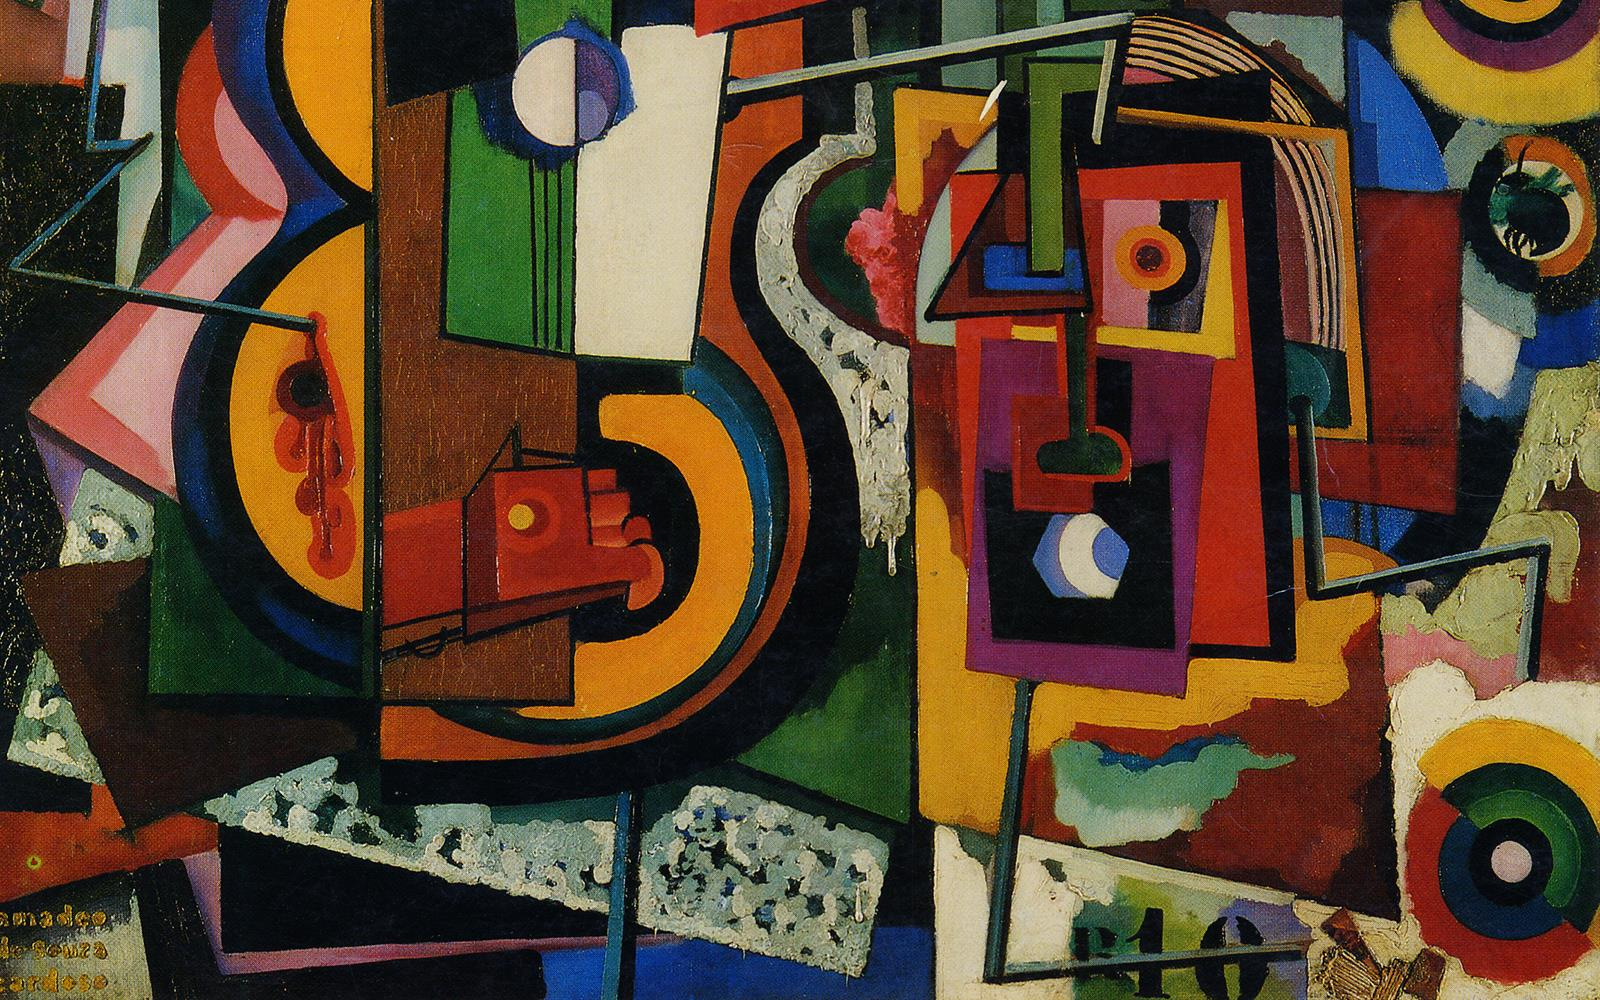 Portuguese Contemporary Painting. Collection of the Modern Art Center